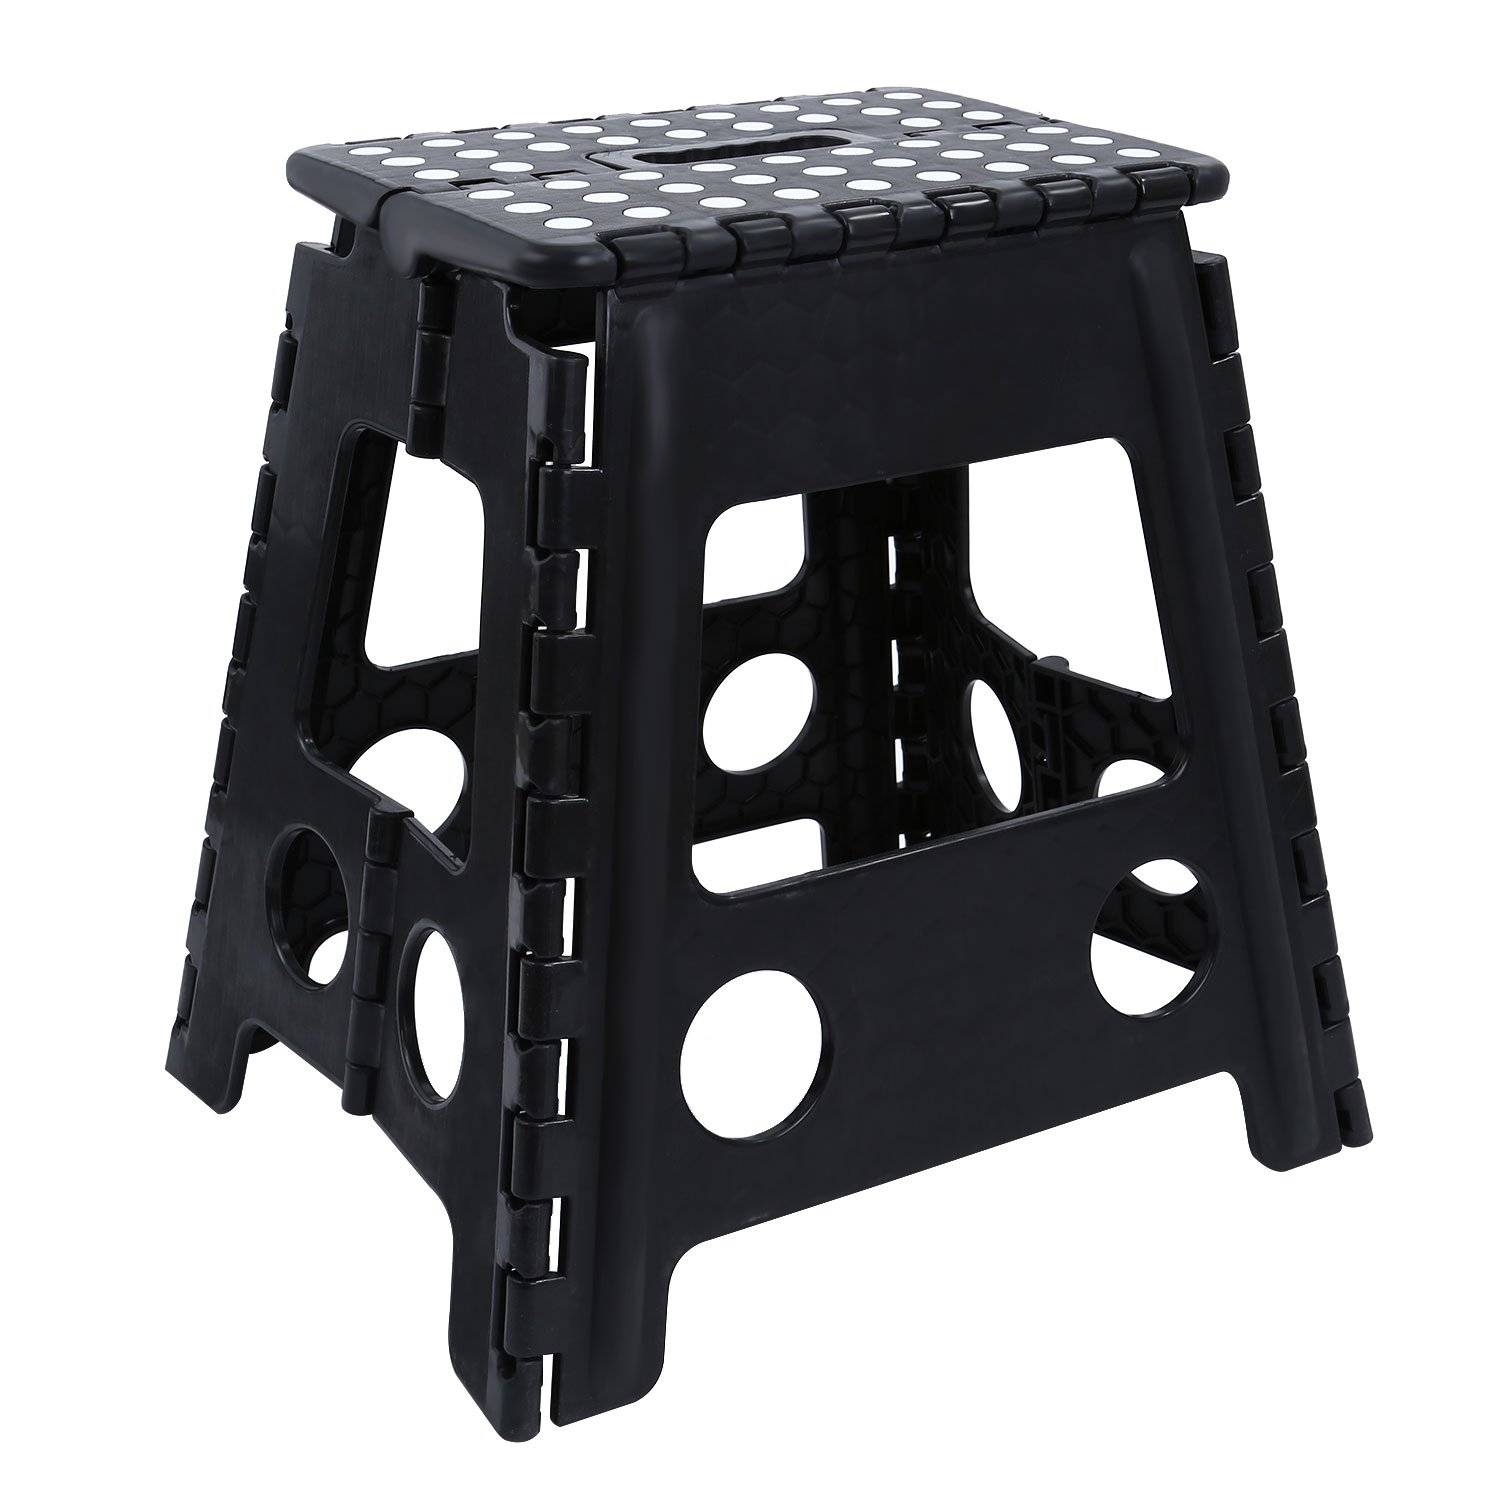 Maddott Super Strong Folding Step Stool for Adults and Kids,11x8.5x15inch, Holds up to 250 Lb, Black